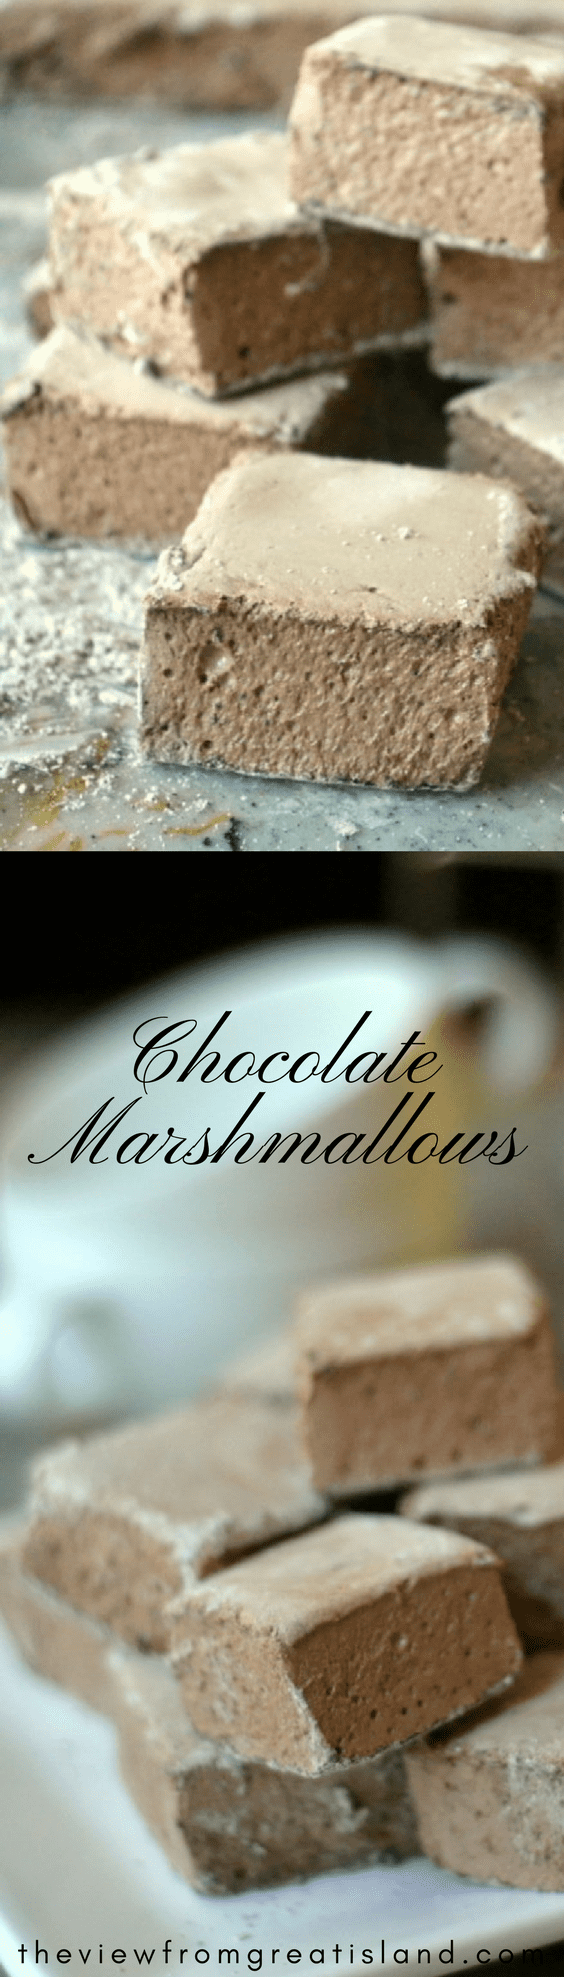 These fun homemade Chocolate Marshmallows will transform plain hot milk into a decadent treat ~ they're super easy to make and impossible to resist! #marshmallows #candy #chocolate #homemademarshmallows #hotcocoa #hotchocolate #homemadecandy #easymarshmallows